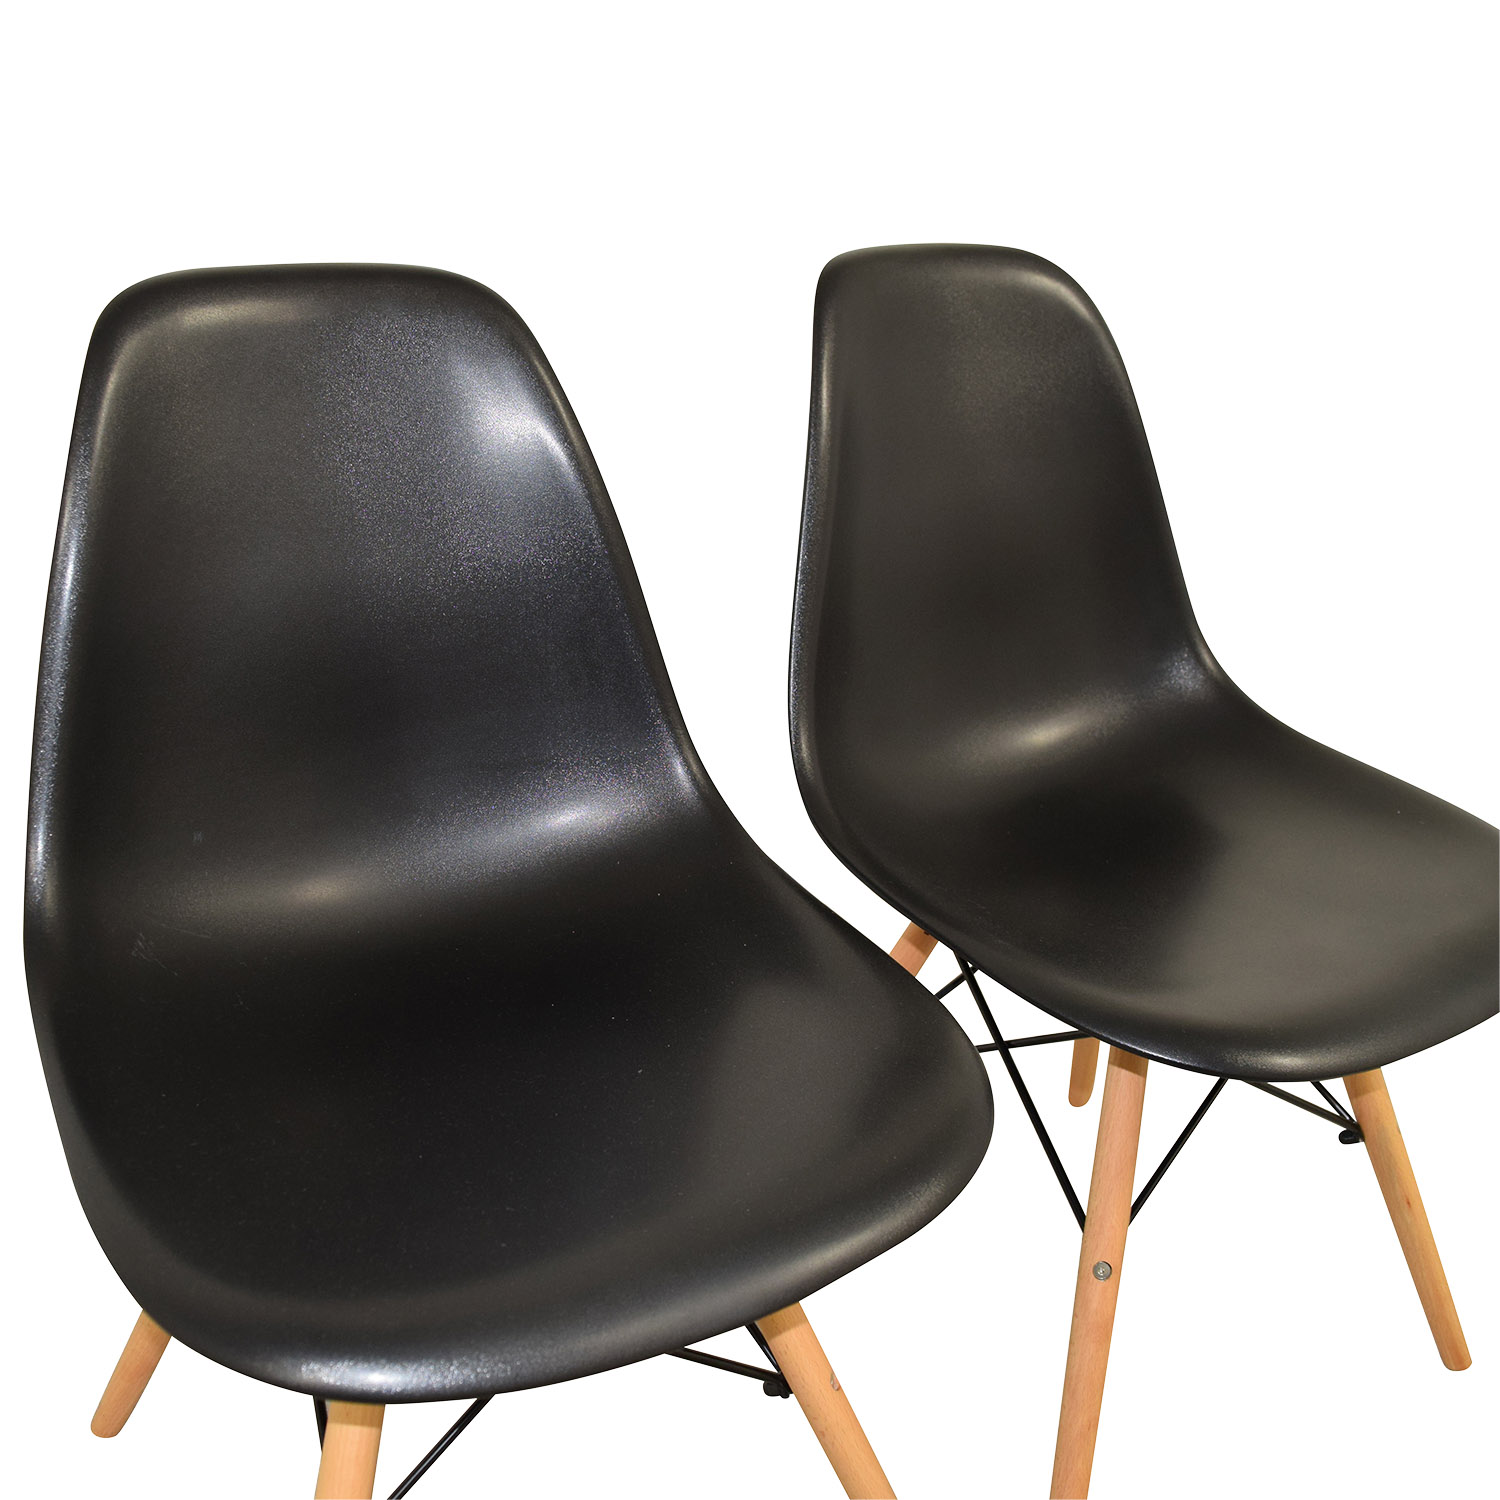 shop CB2 Black and Beech Wood Chairs CB2